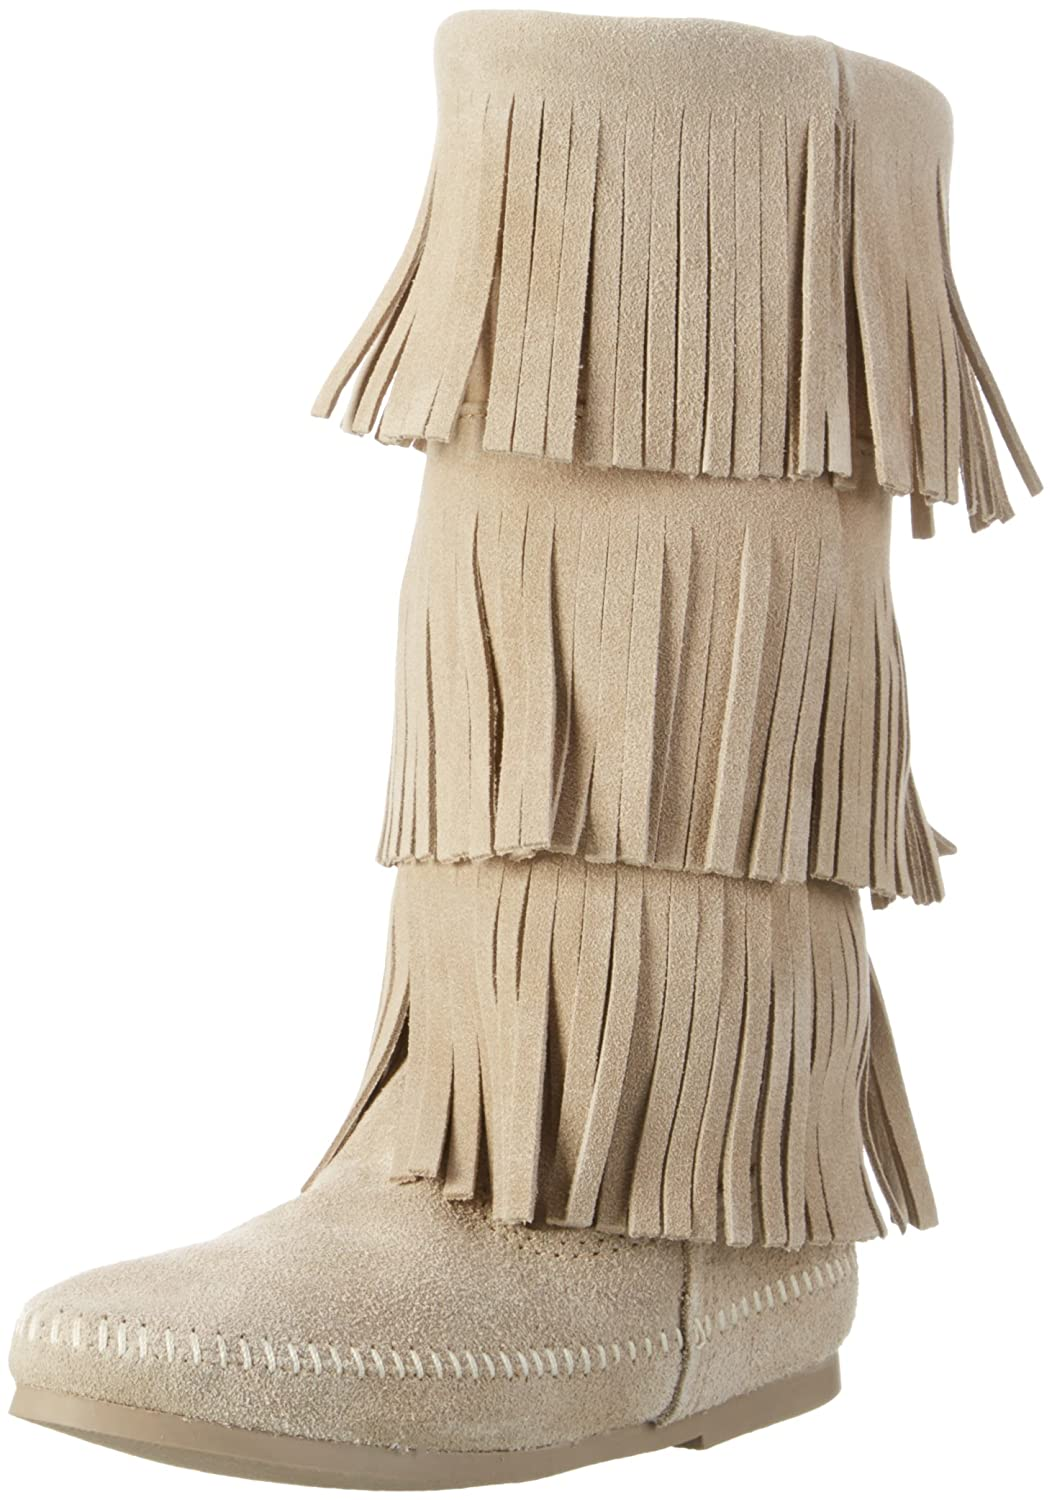 Minnetonka Women's 3-Layer Fringe Boot B013XHWBG2 5 B(M) US|Stone